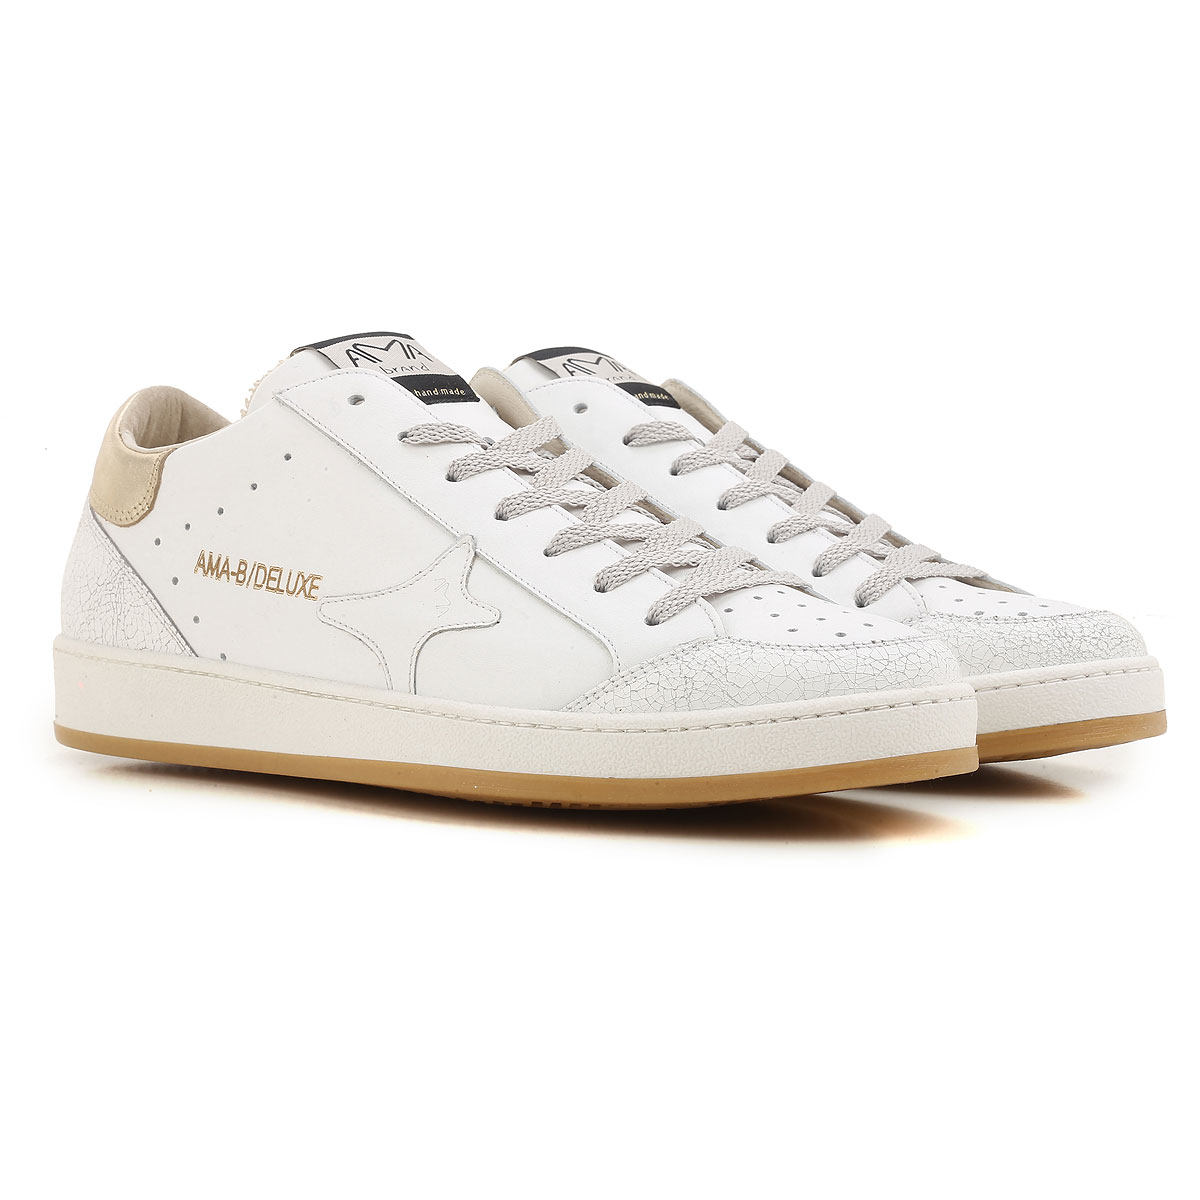 Image of Ama Brand Sneakers for Men On Sale in Outlet, White, Leather, 2017, EUR 43 - UK 9 - USA 9.5 EUR 45 - UK 10.5 - USA 11 EUR 41 - US 8 - UK 7